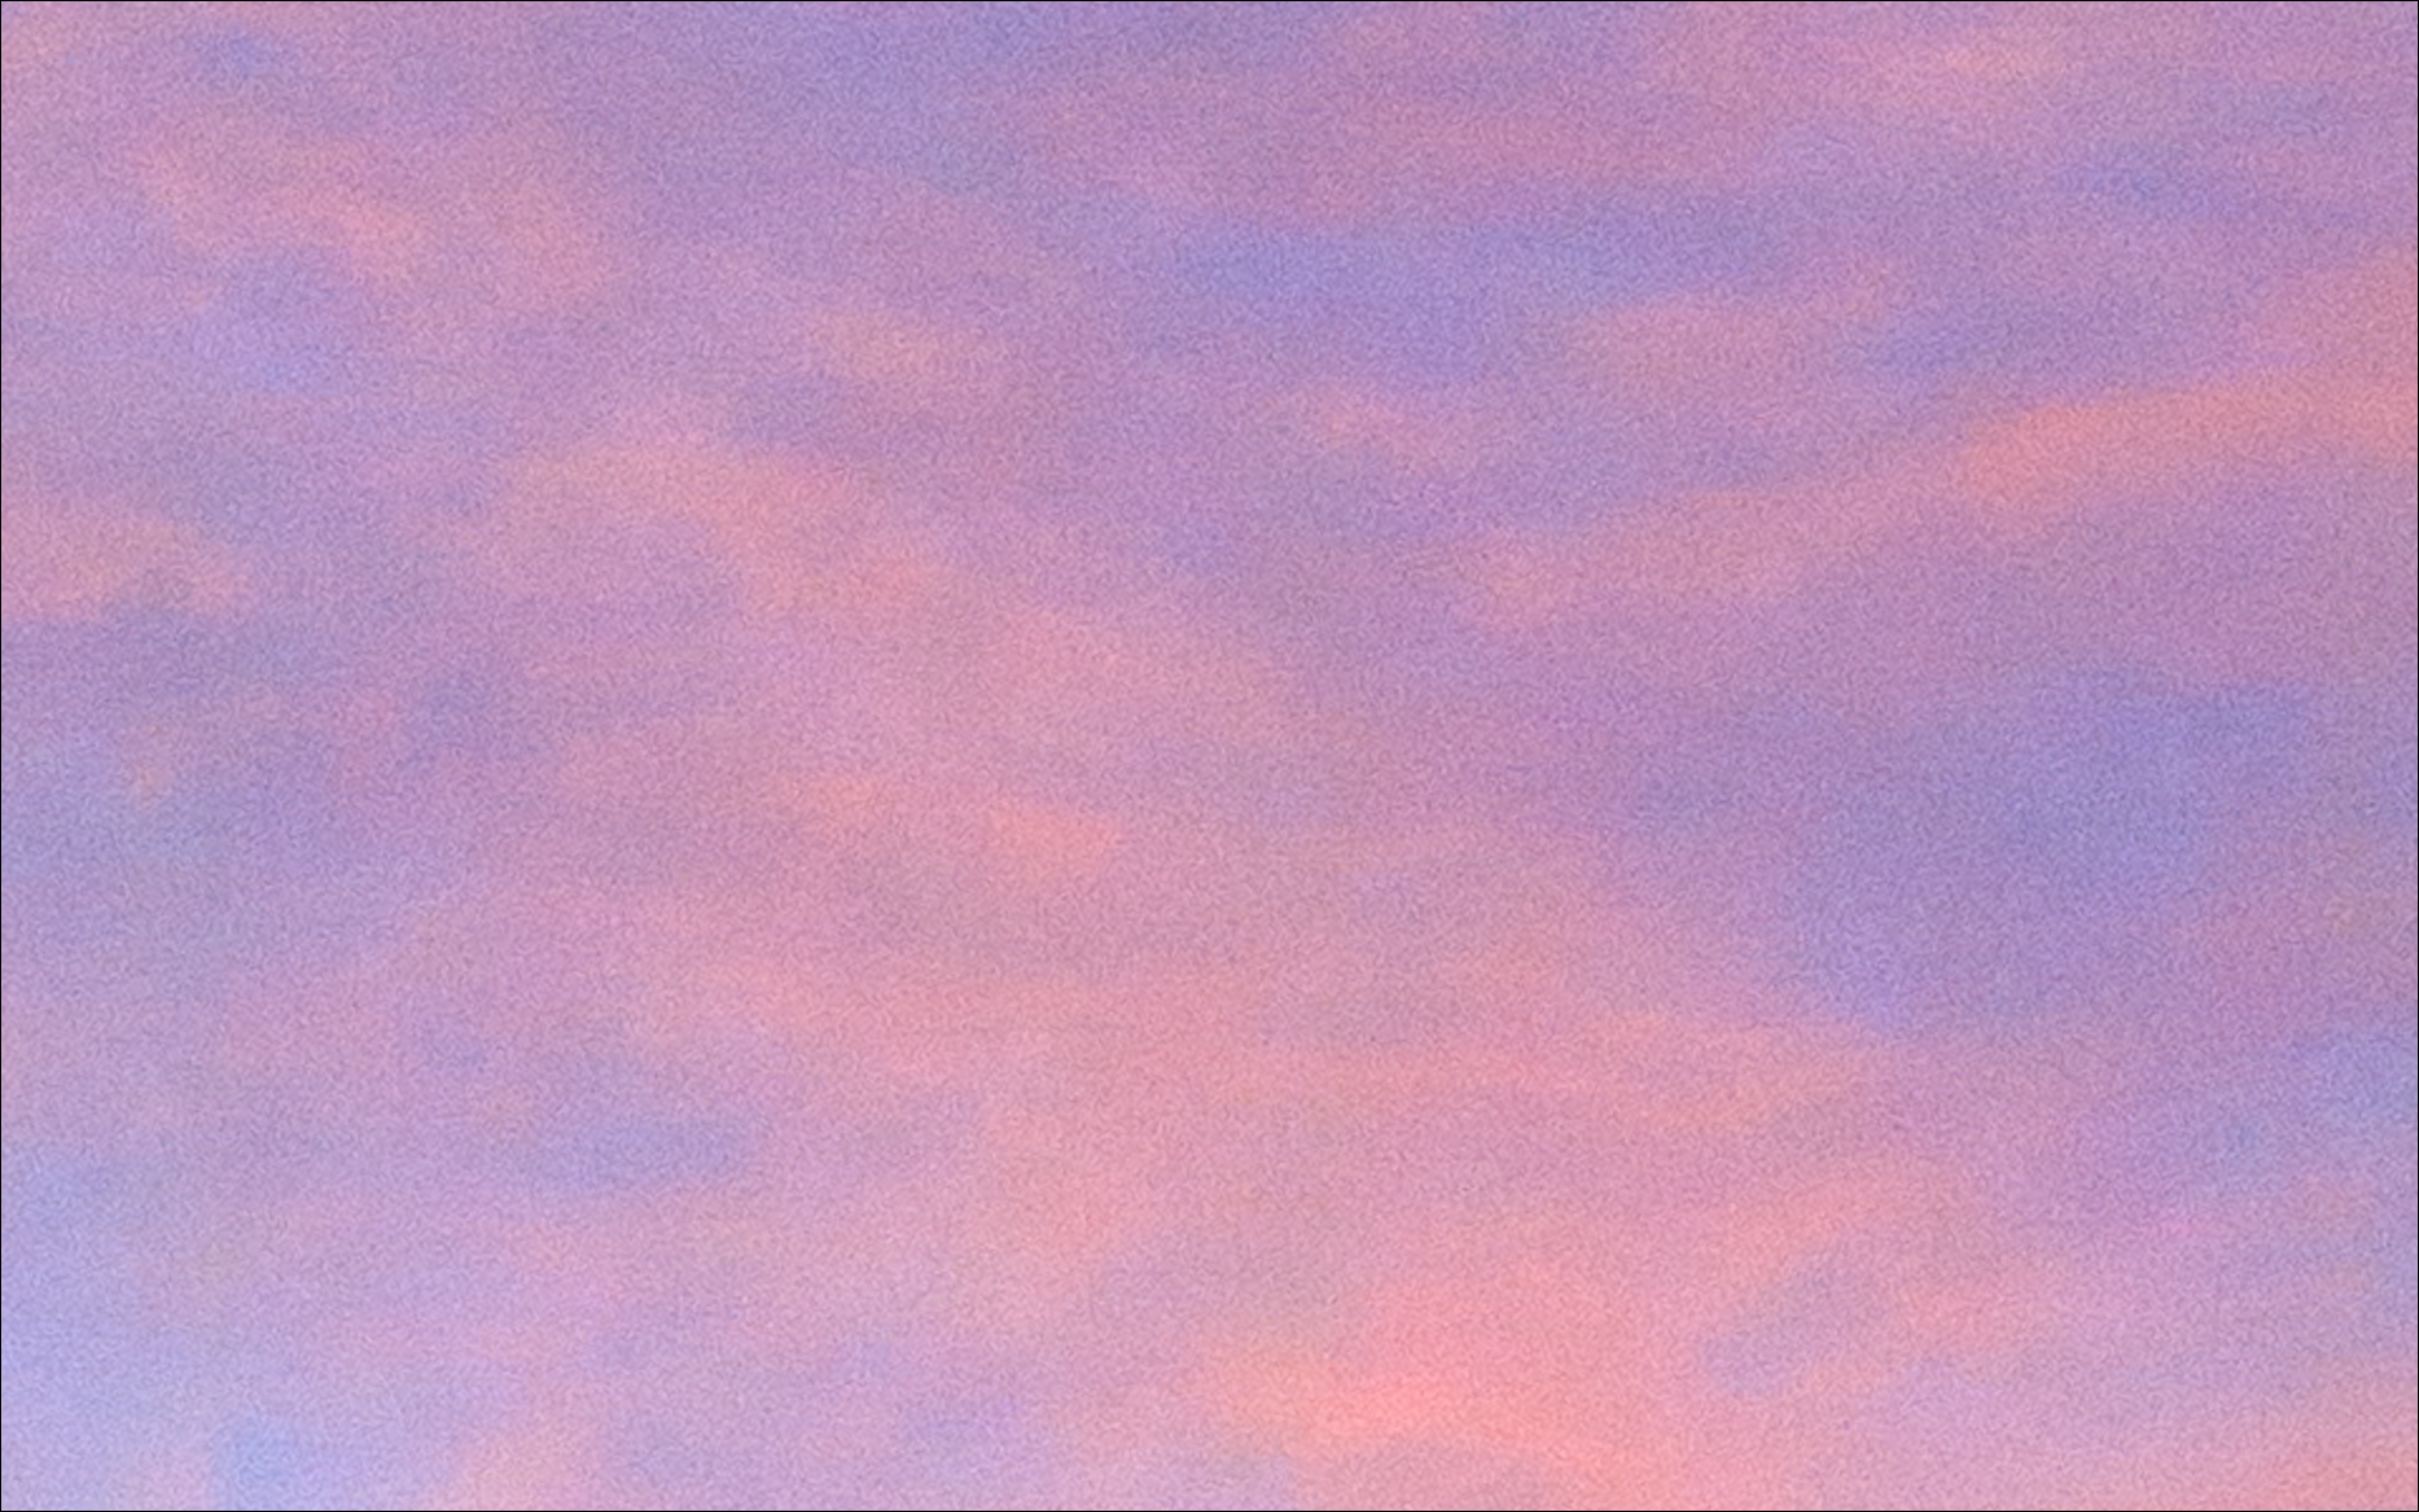 Before Luminance Noise Reduction (Click to enlarge)